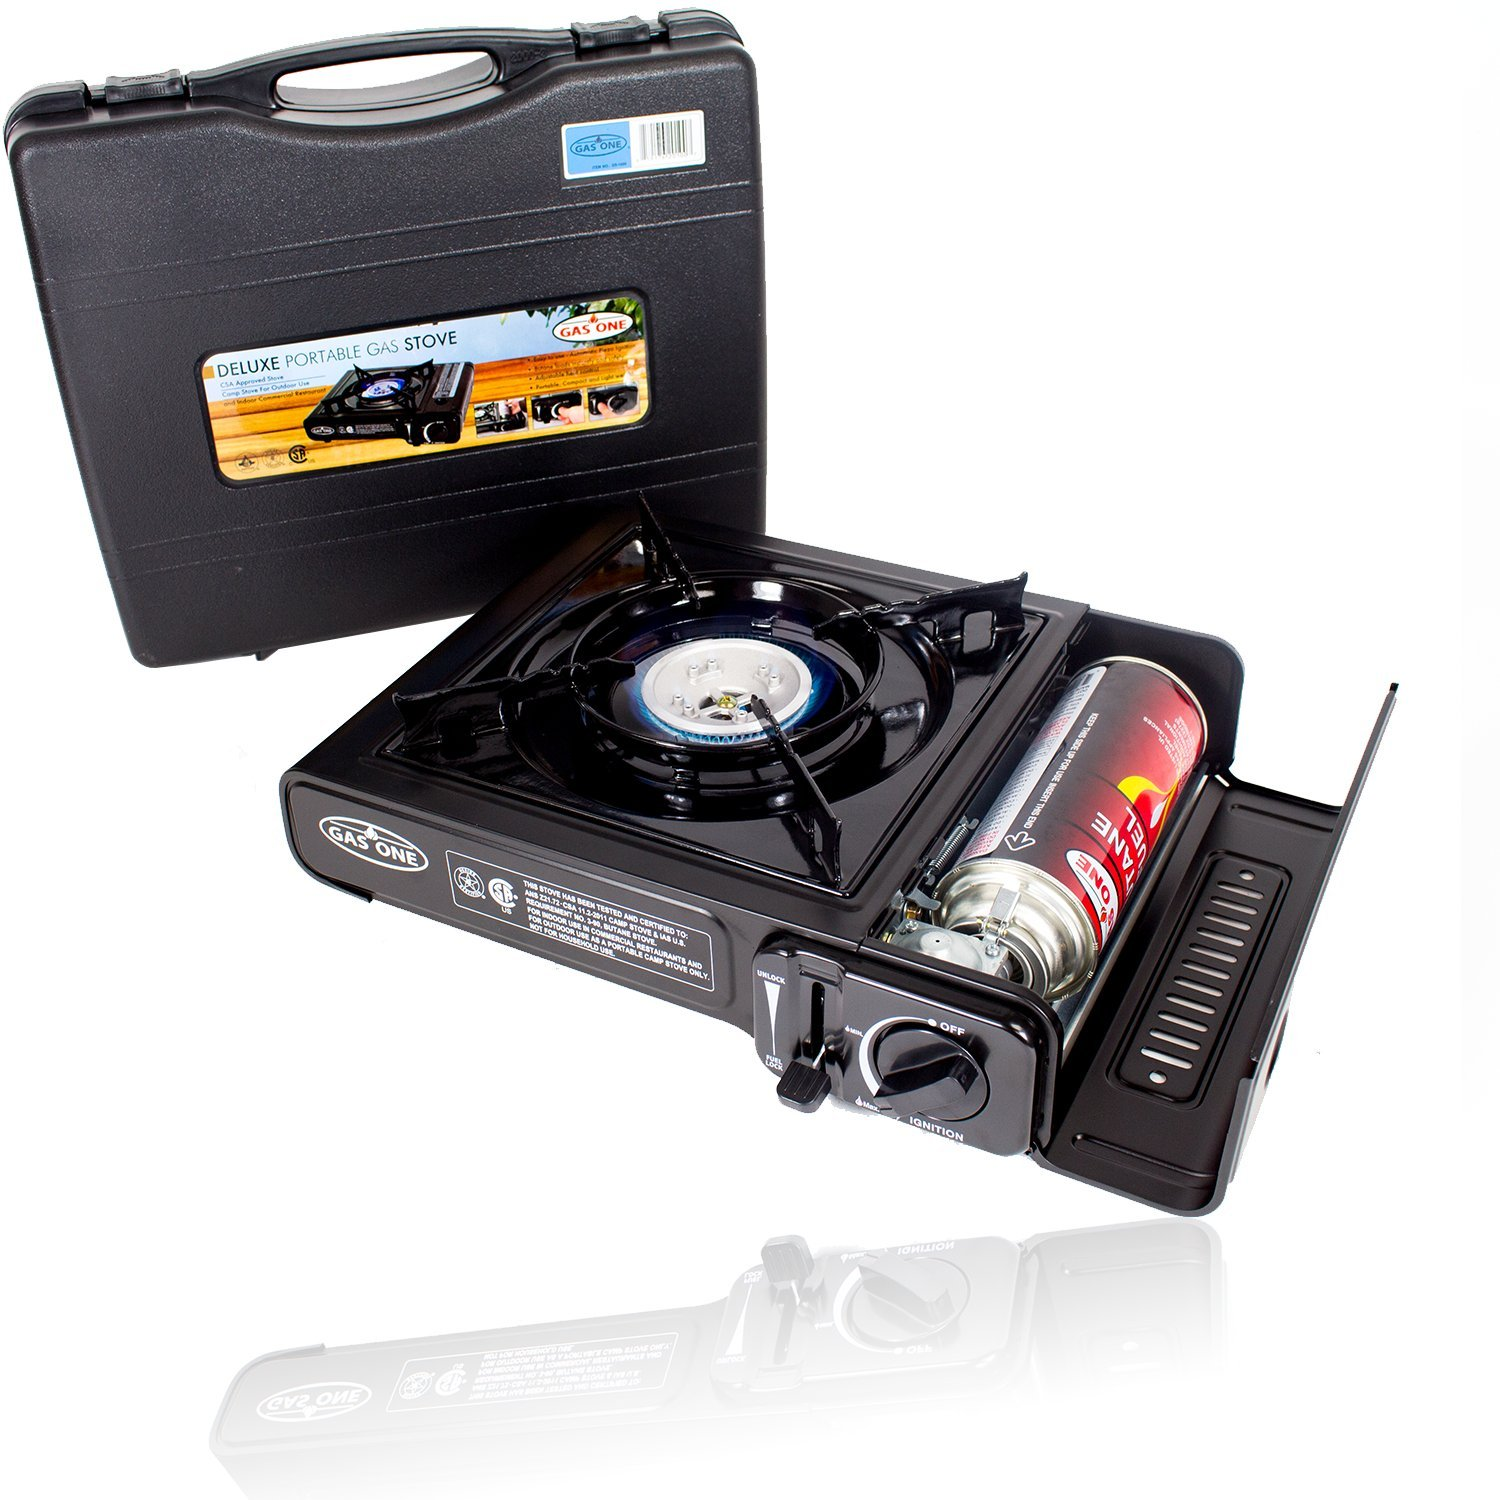 GAS ONE GS 1000 7,650 BTU Portable Butane Gas Stove Automatic Ignition With  Carrying Case